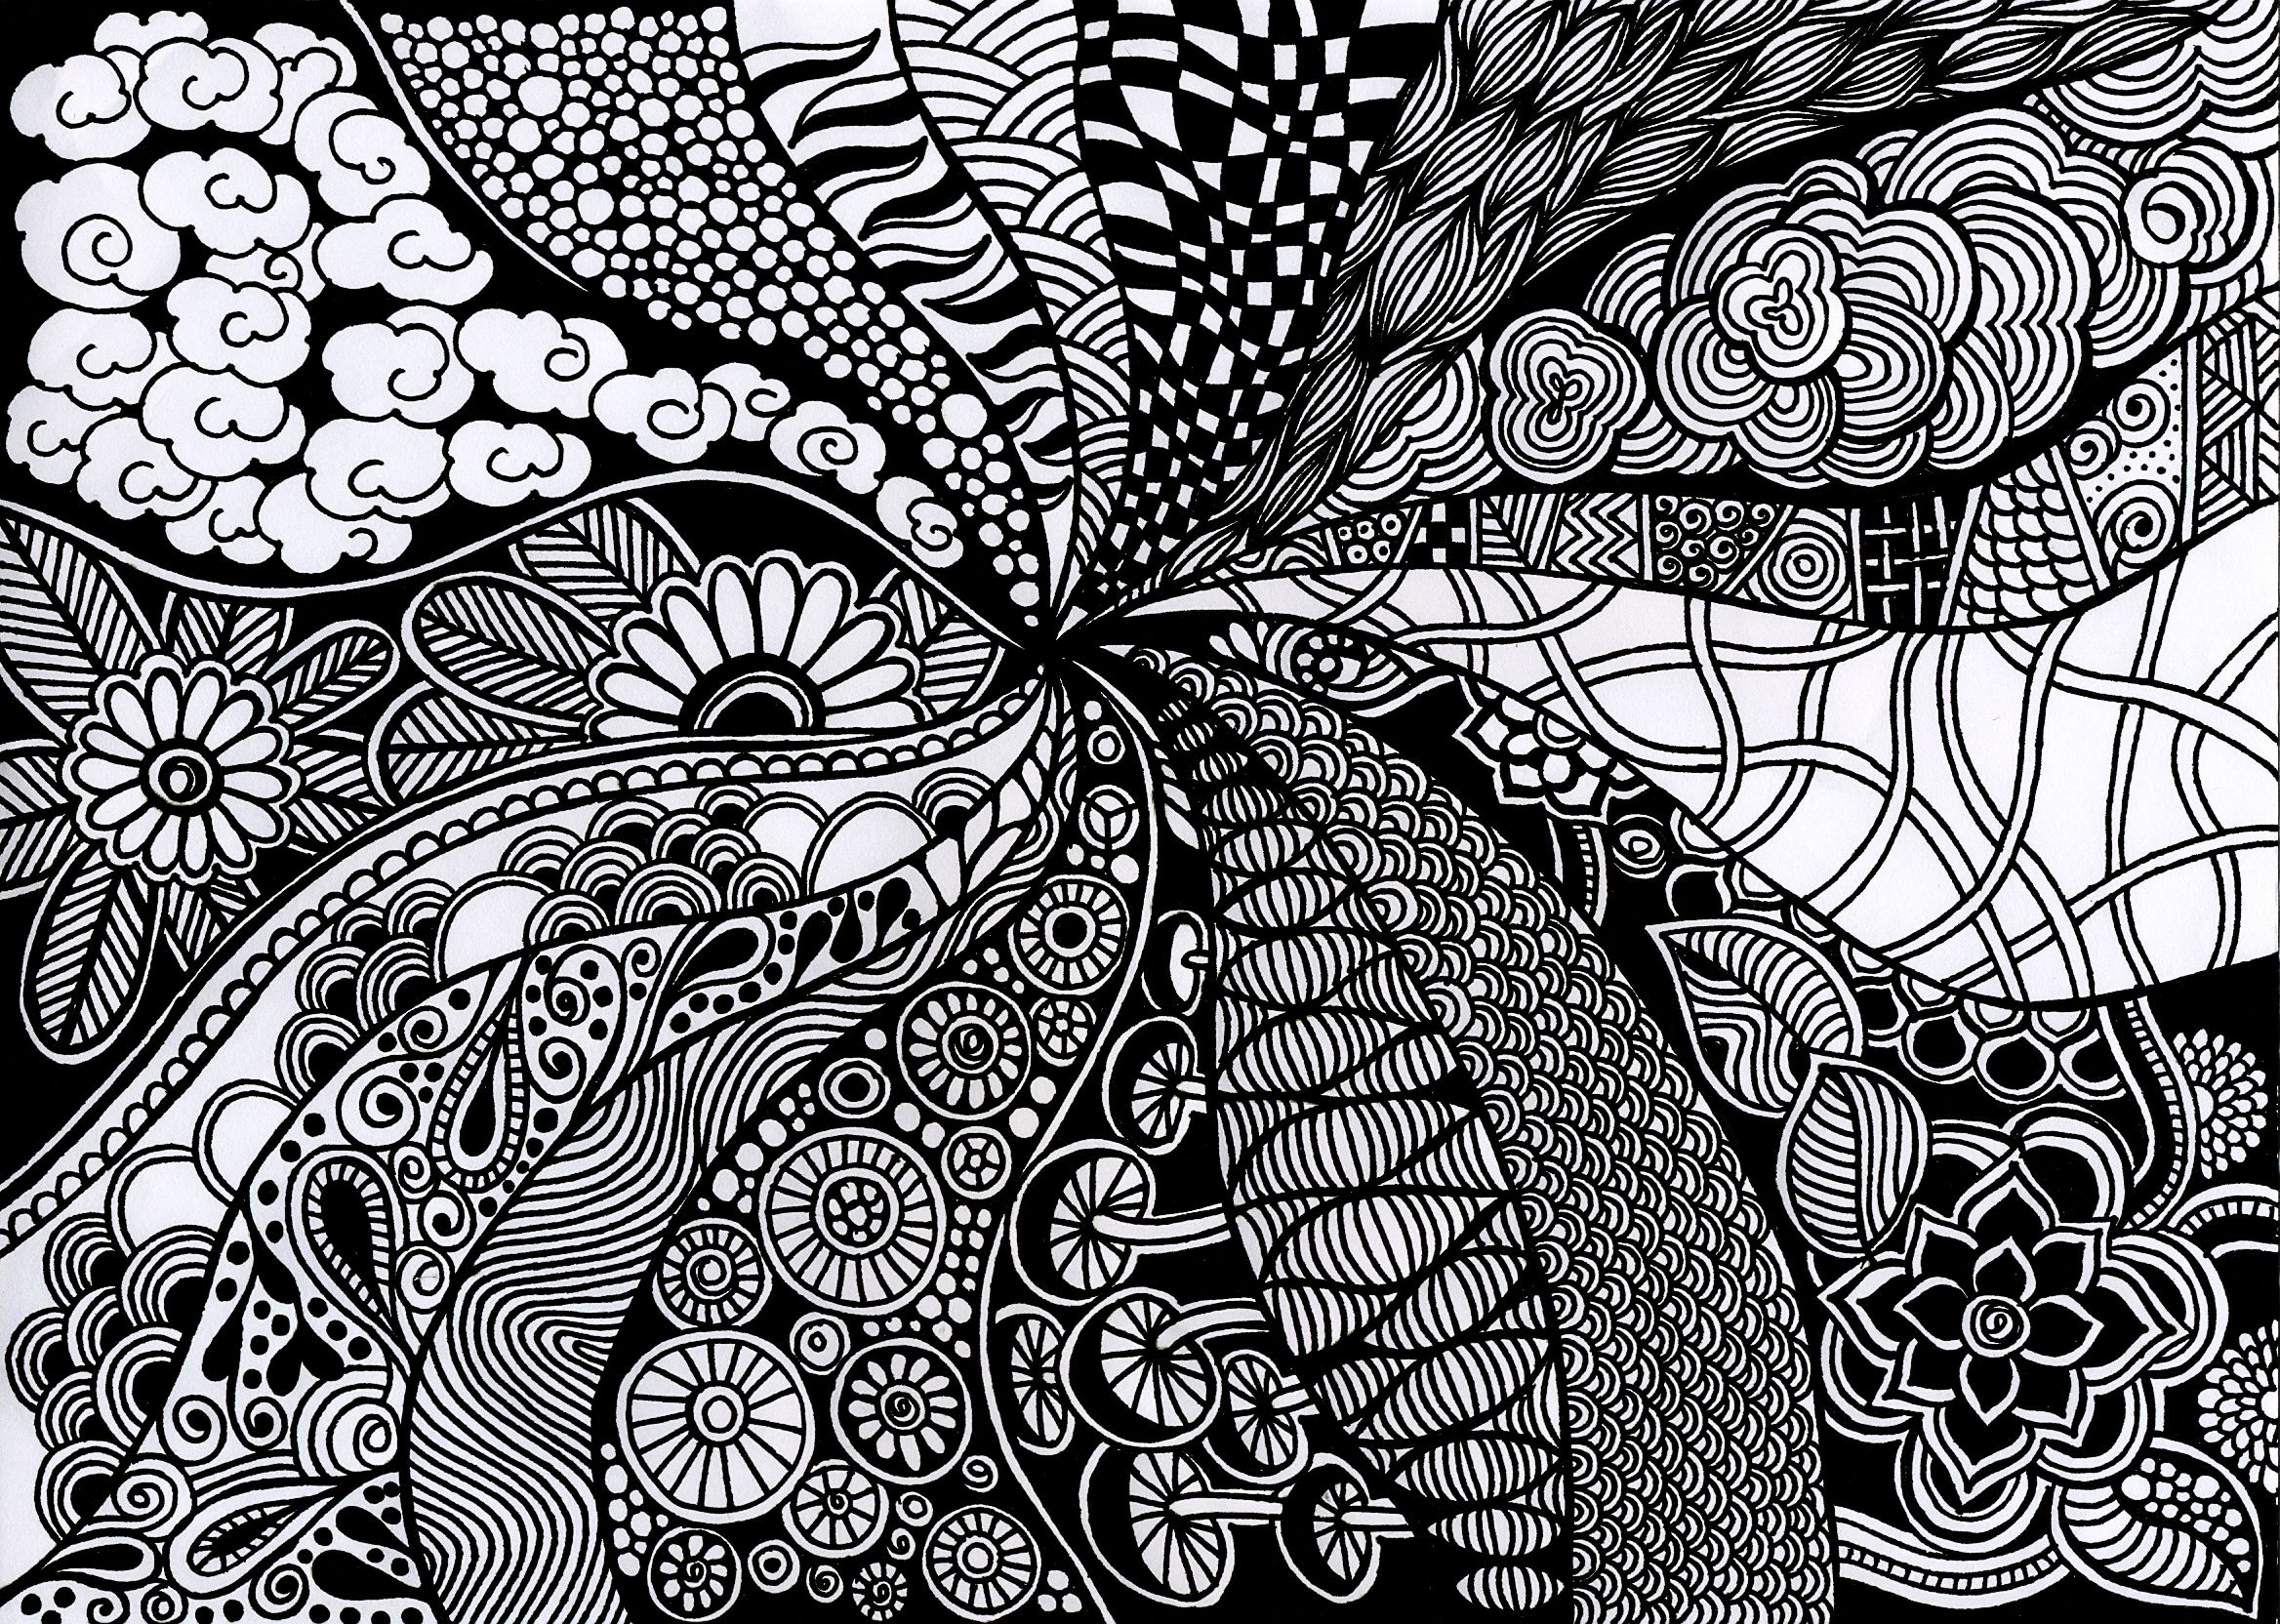 Black And White Art Ideas Black And White Tangles Doodle Art Pattern Art Art